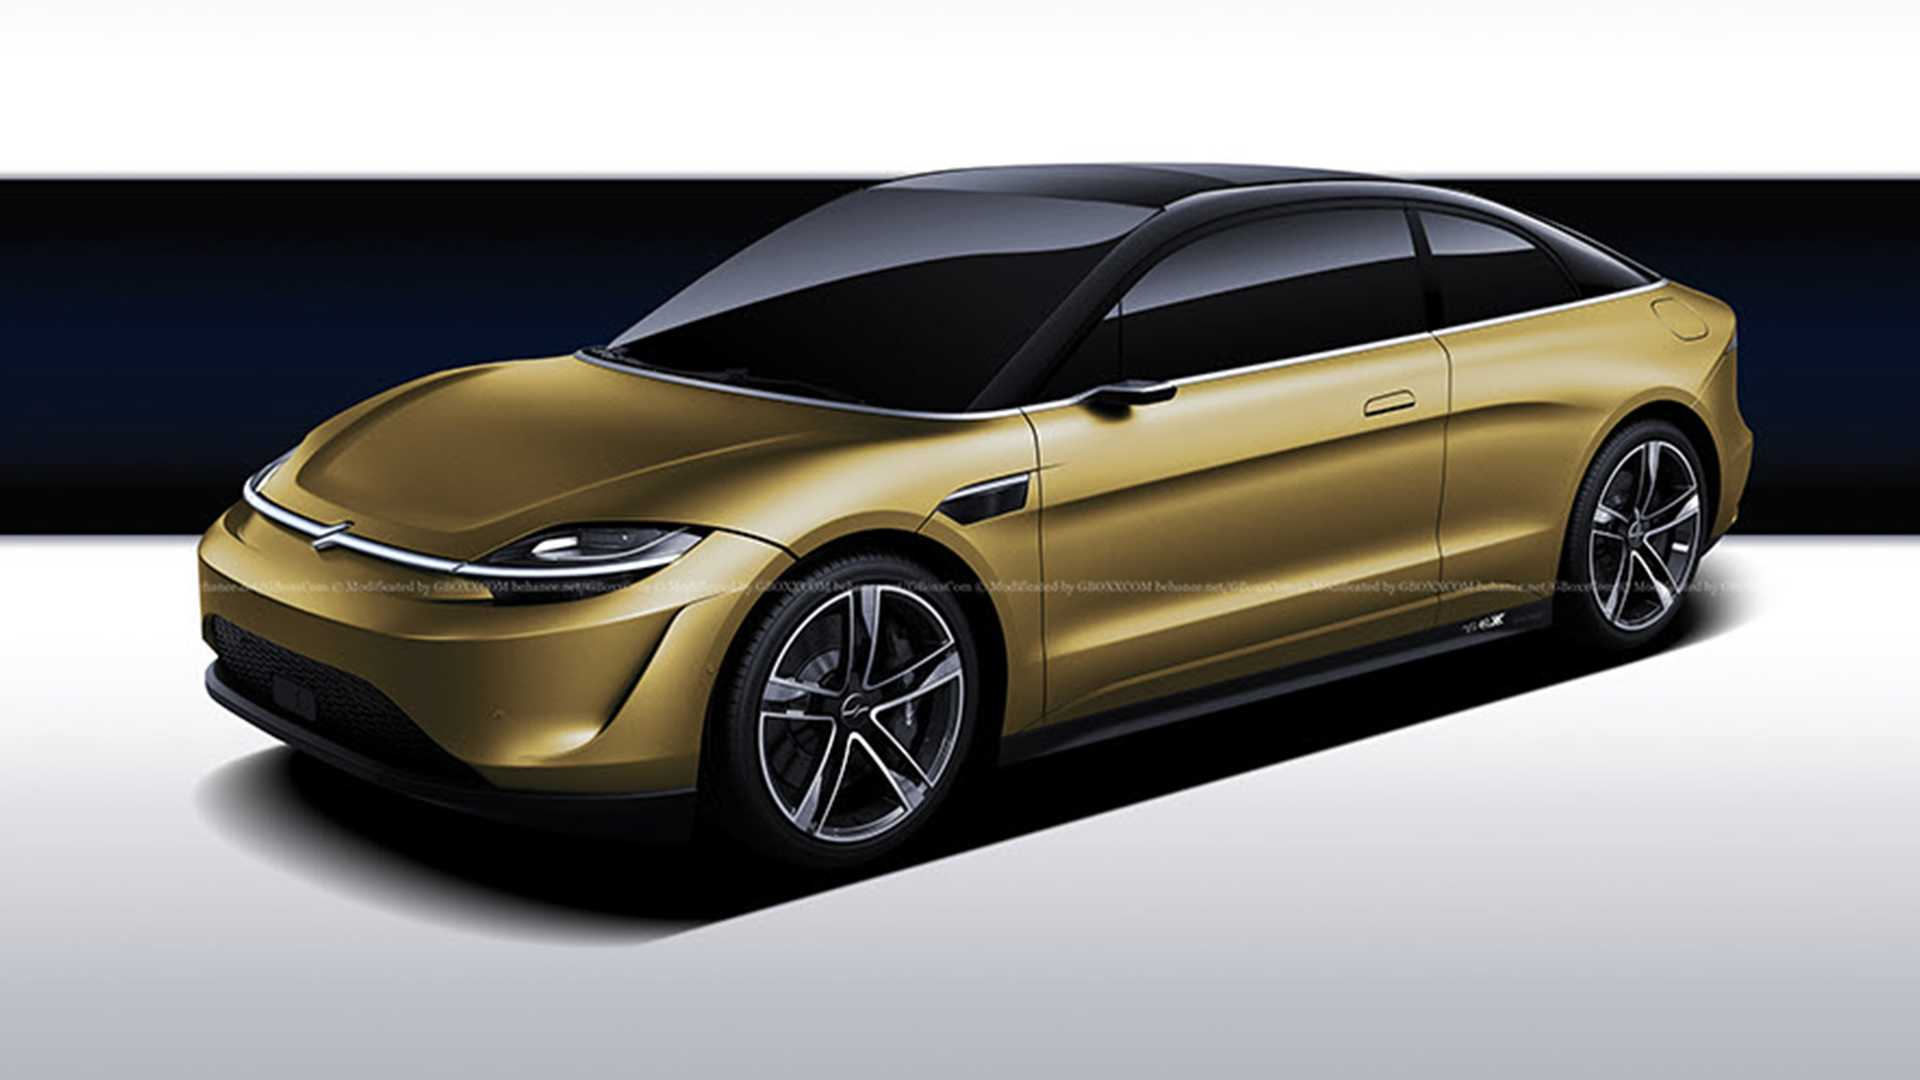 Sony Concept Car Looks Even Better As A Coupe